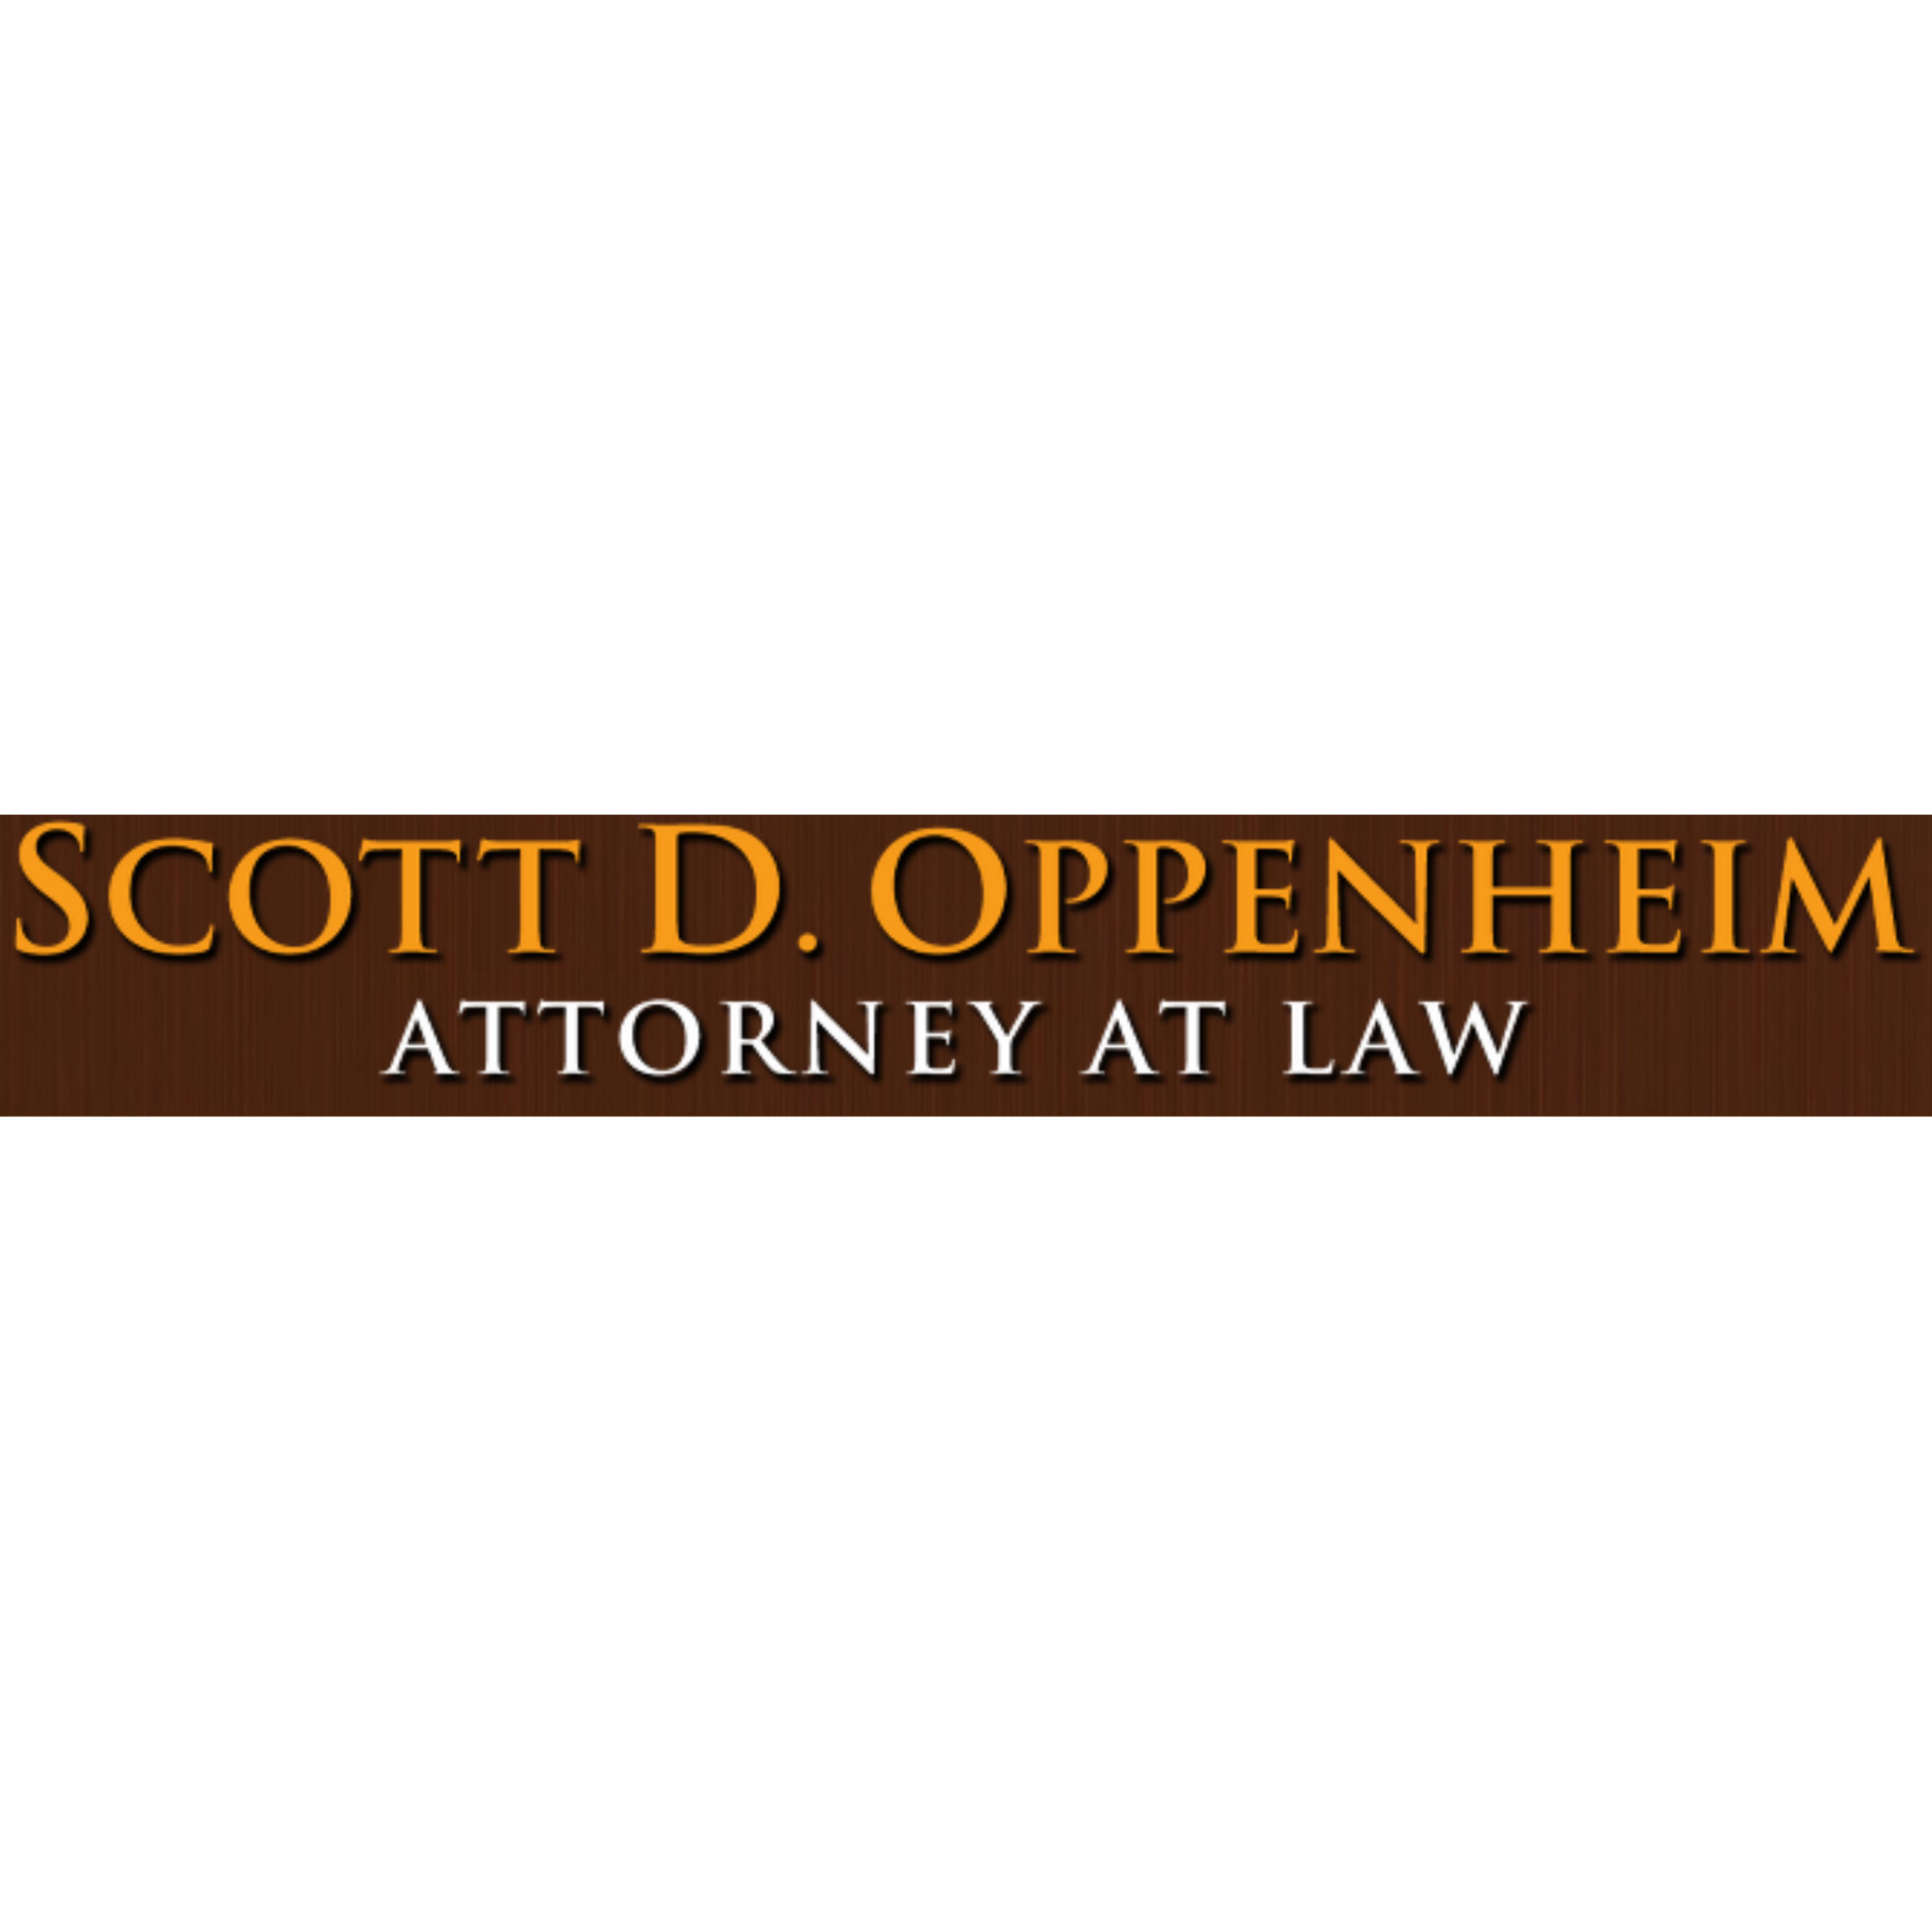 Scott D. Oppenheim Attorney At Law